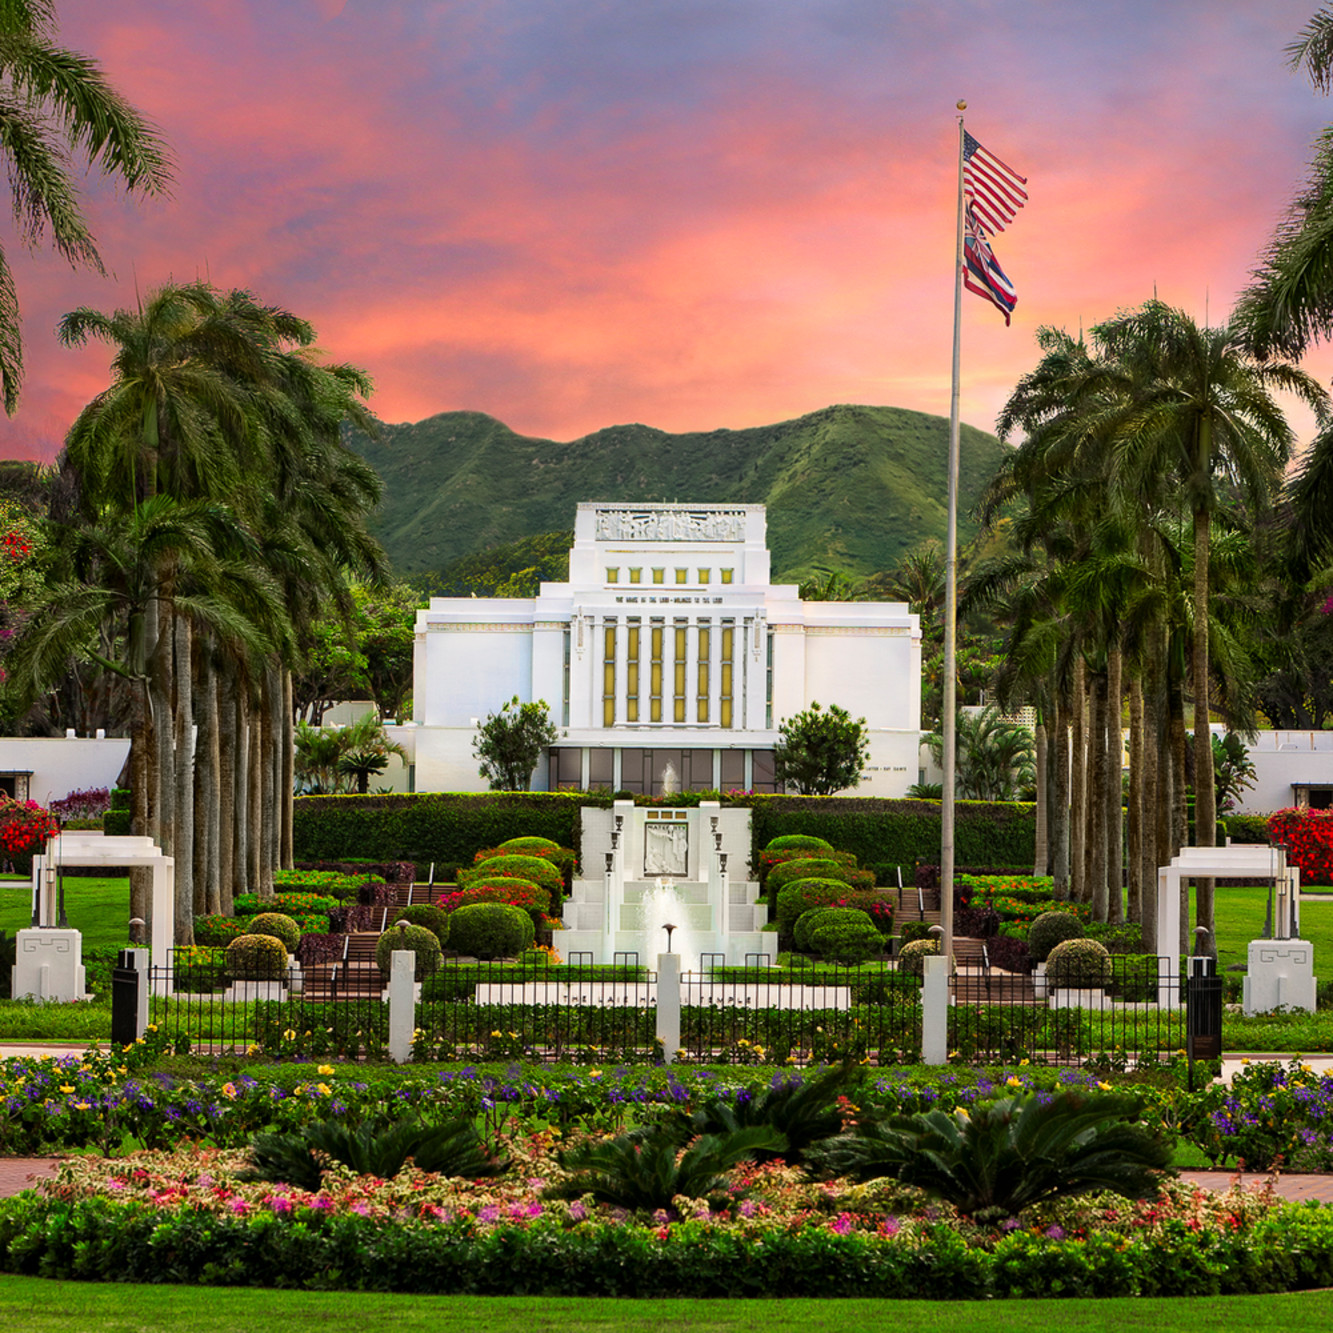 Robert a boyd laie hawaii temple blossoming spring usrcuf